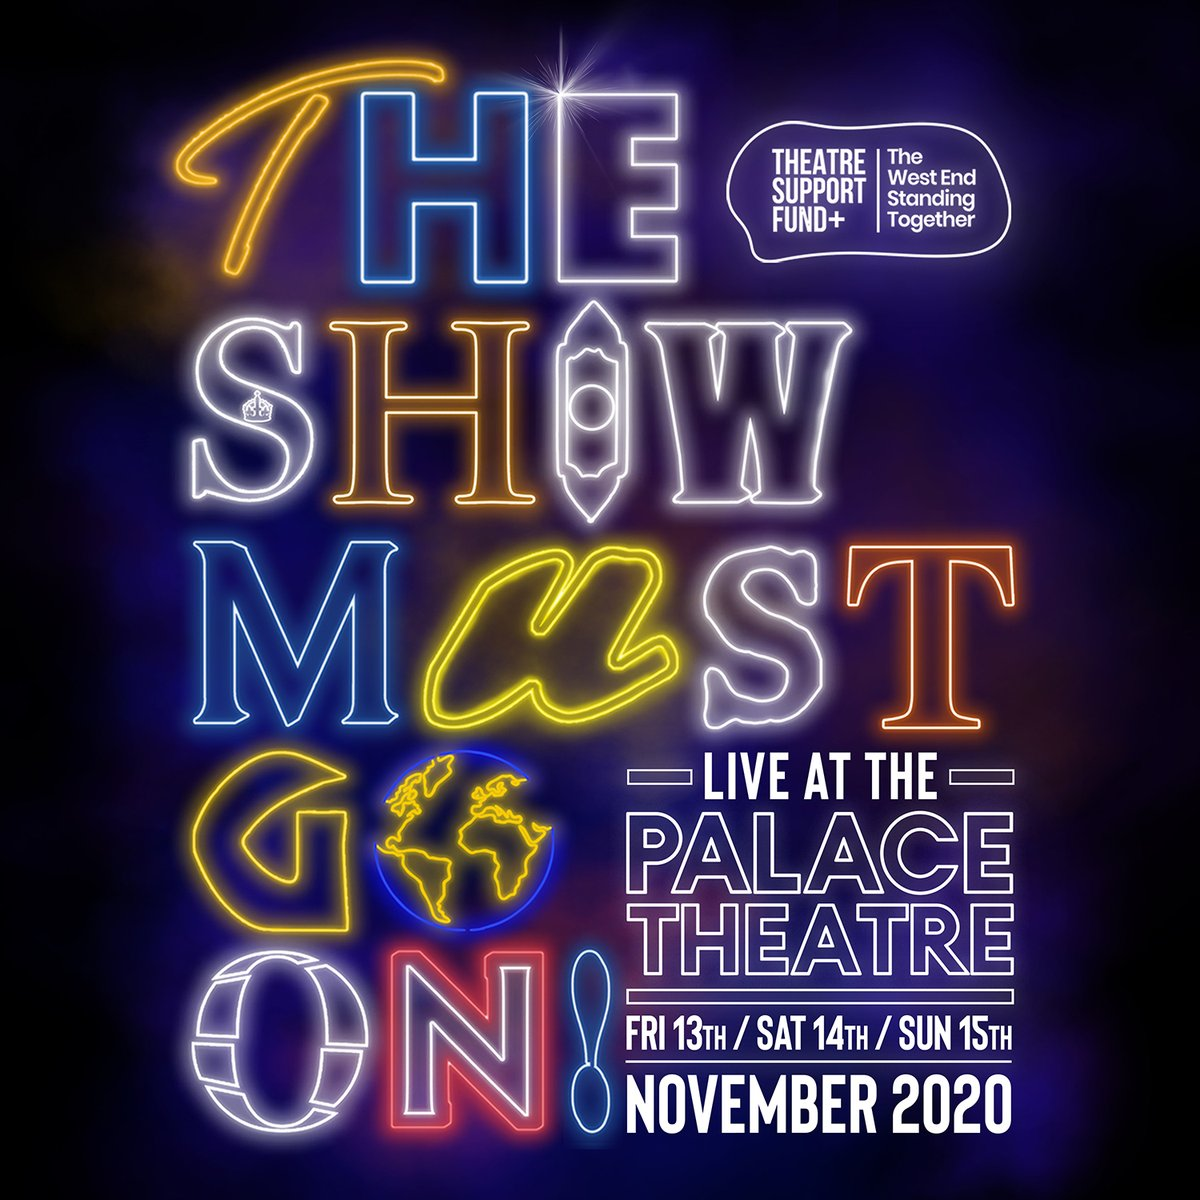 .@theatre_support Fund & #TheShowMustGoOn! campaign present The Show Must Go On Live at Palace Theatre on 13, 14 & 15 Nov  #WestEnd shows appearing inc @julietmusical @ComeFromAwayUK @DEHWestEnd @JamieMusical & @sixthemusical  @actingforothers #fleabagforcharity #theatrenews #TP